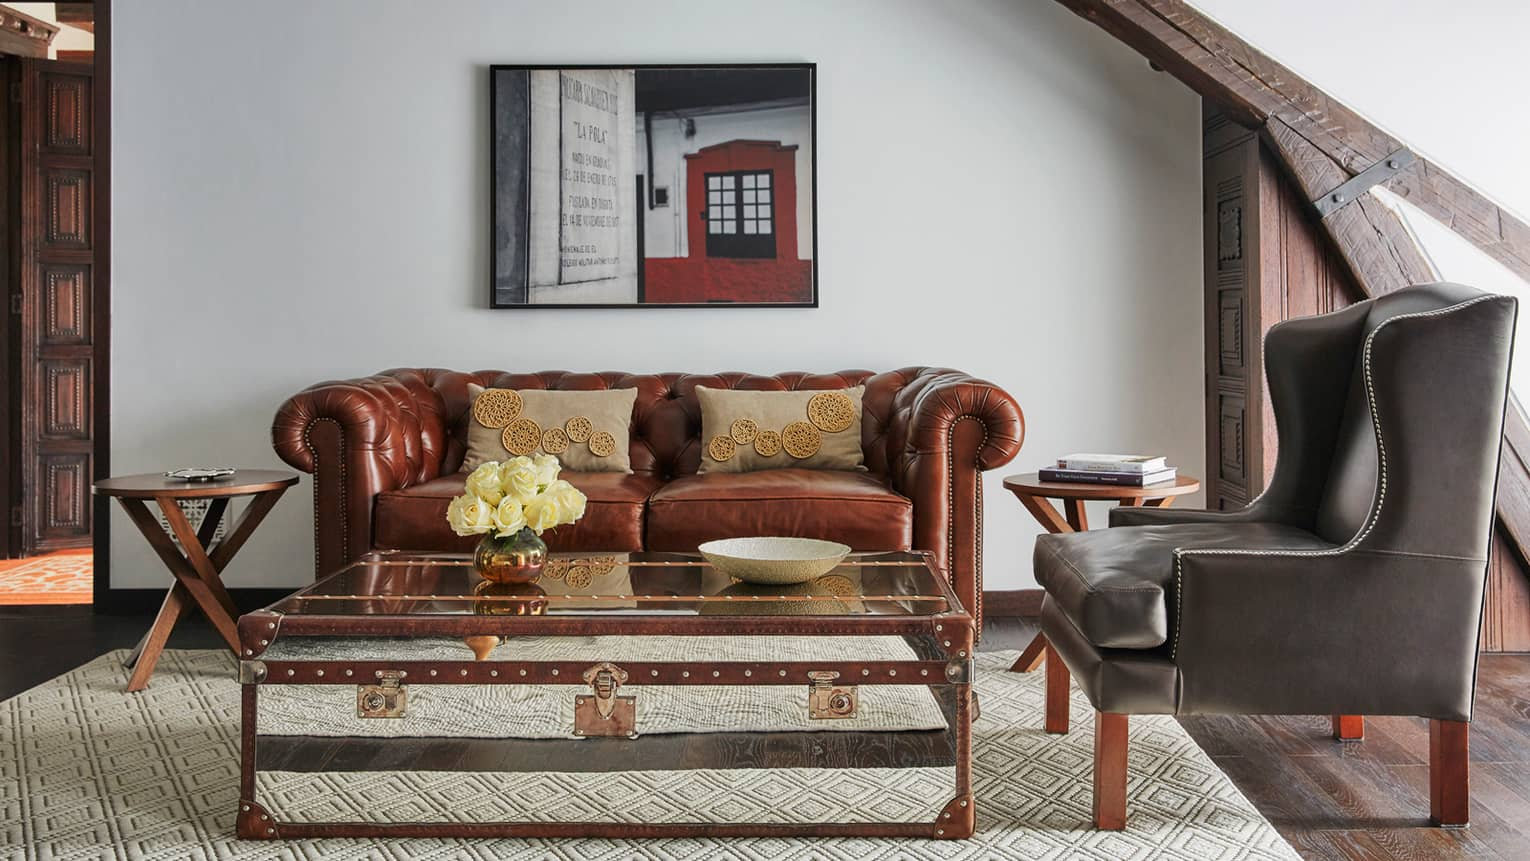 Trunk-style coffee table in front of period-style brown leather sofa, modern black armchair, oil painting